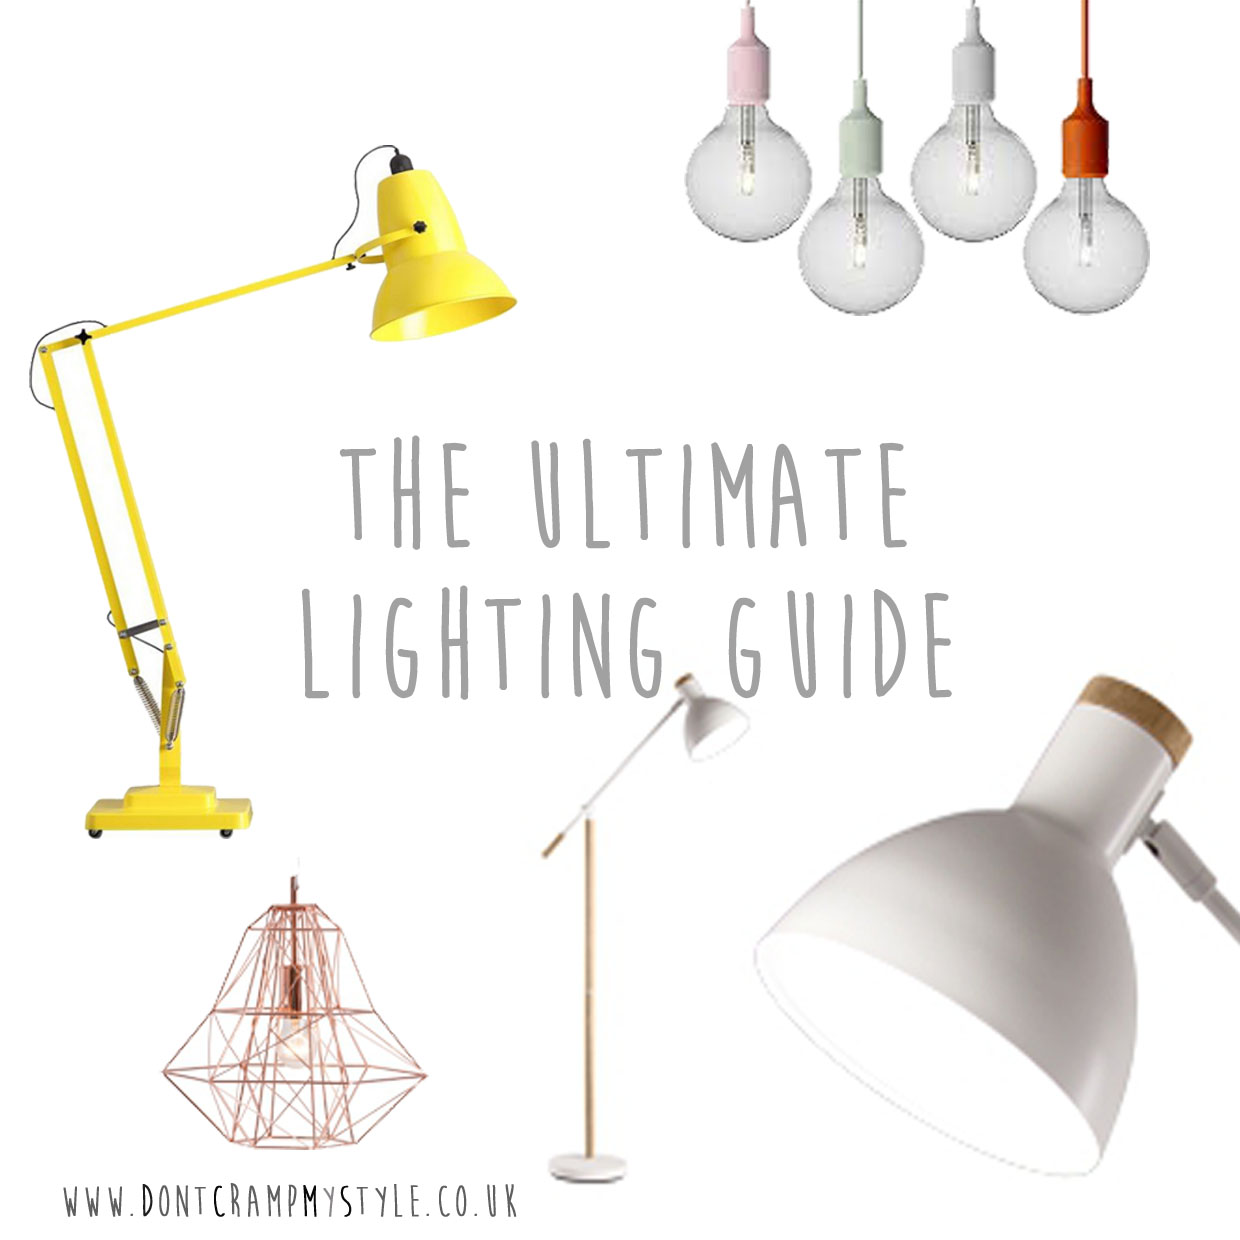 The Ultimatum Lighting Guide! How to choose lamps for your home ...